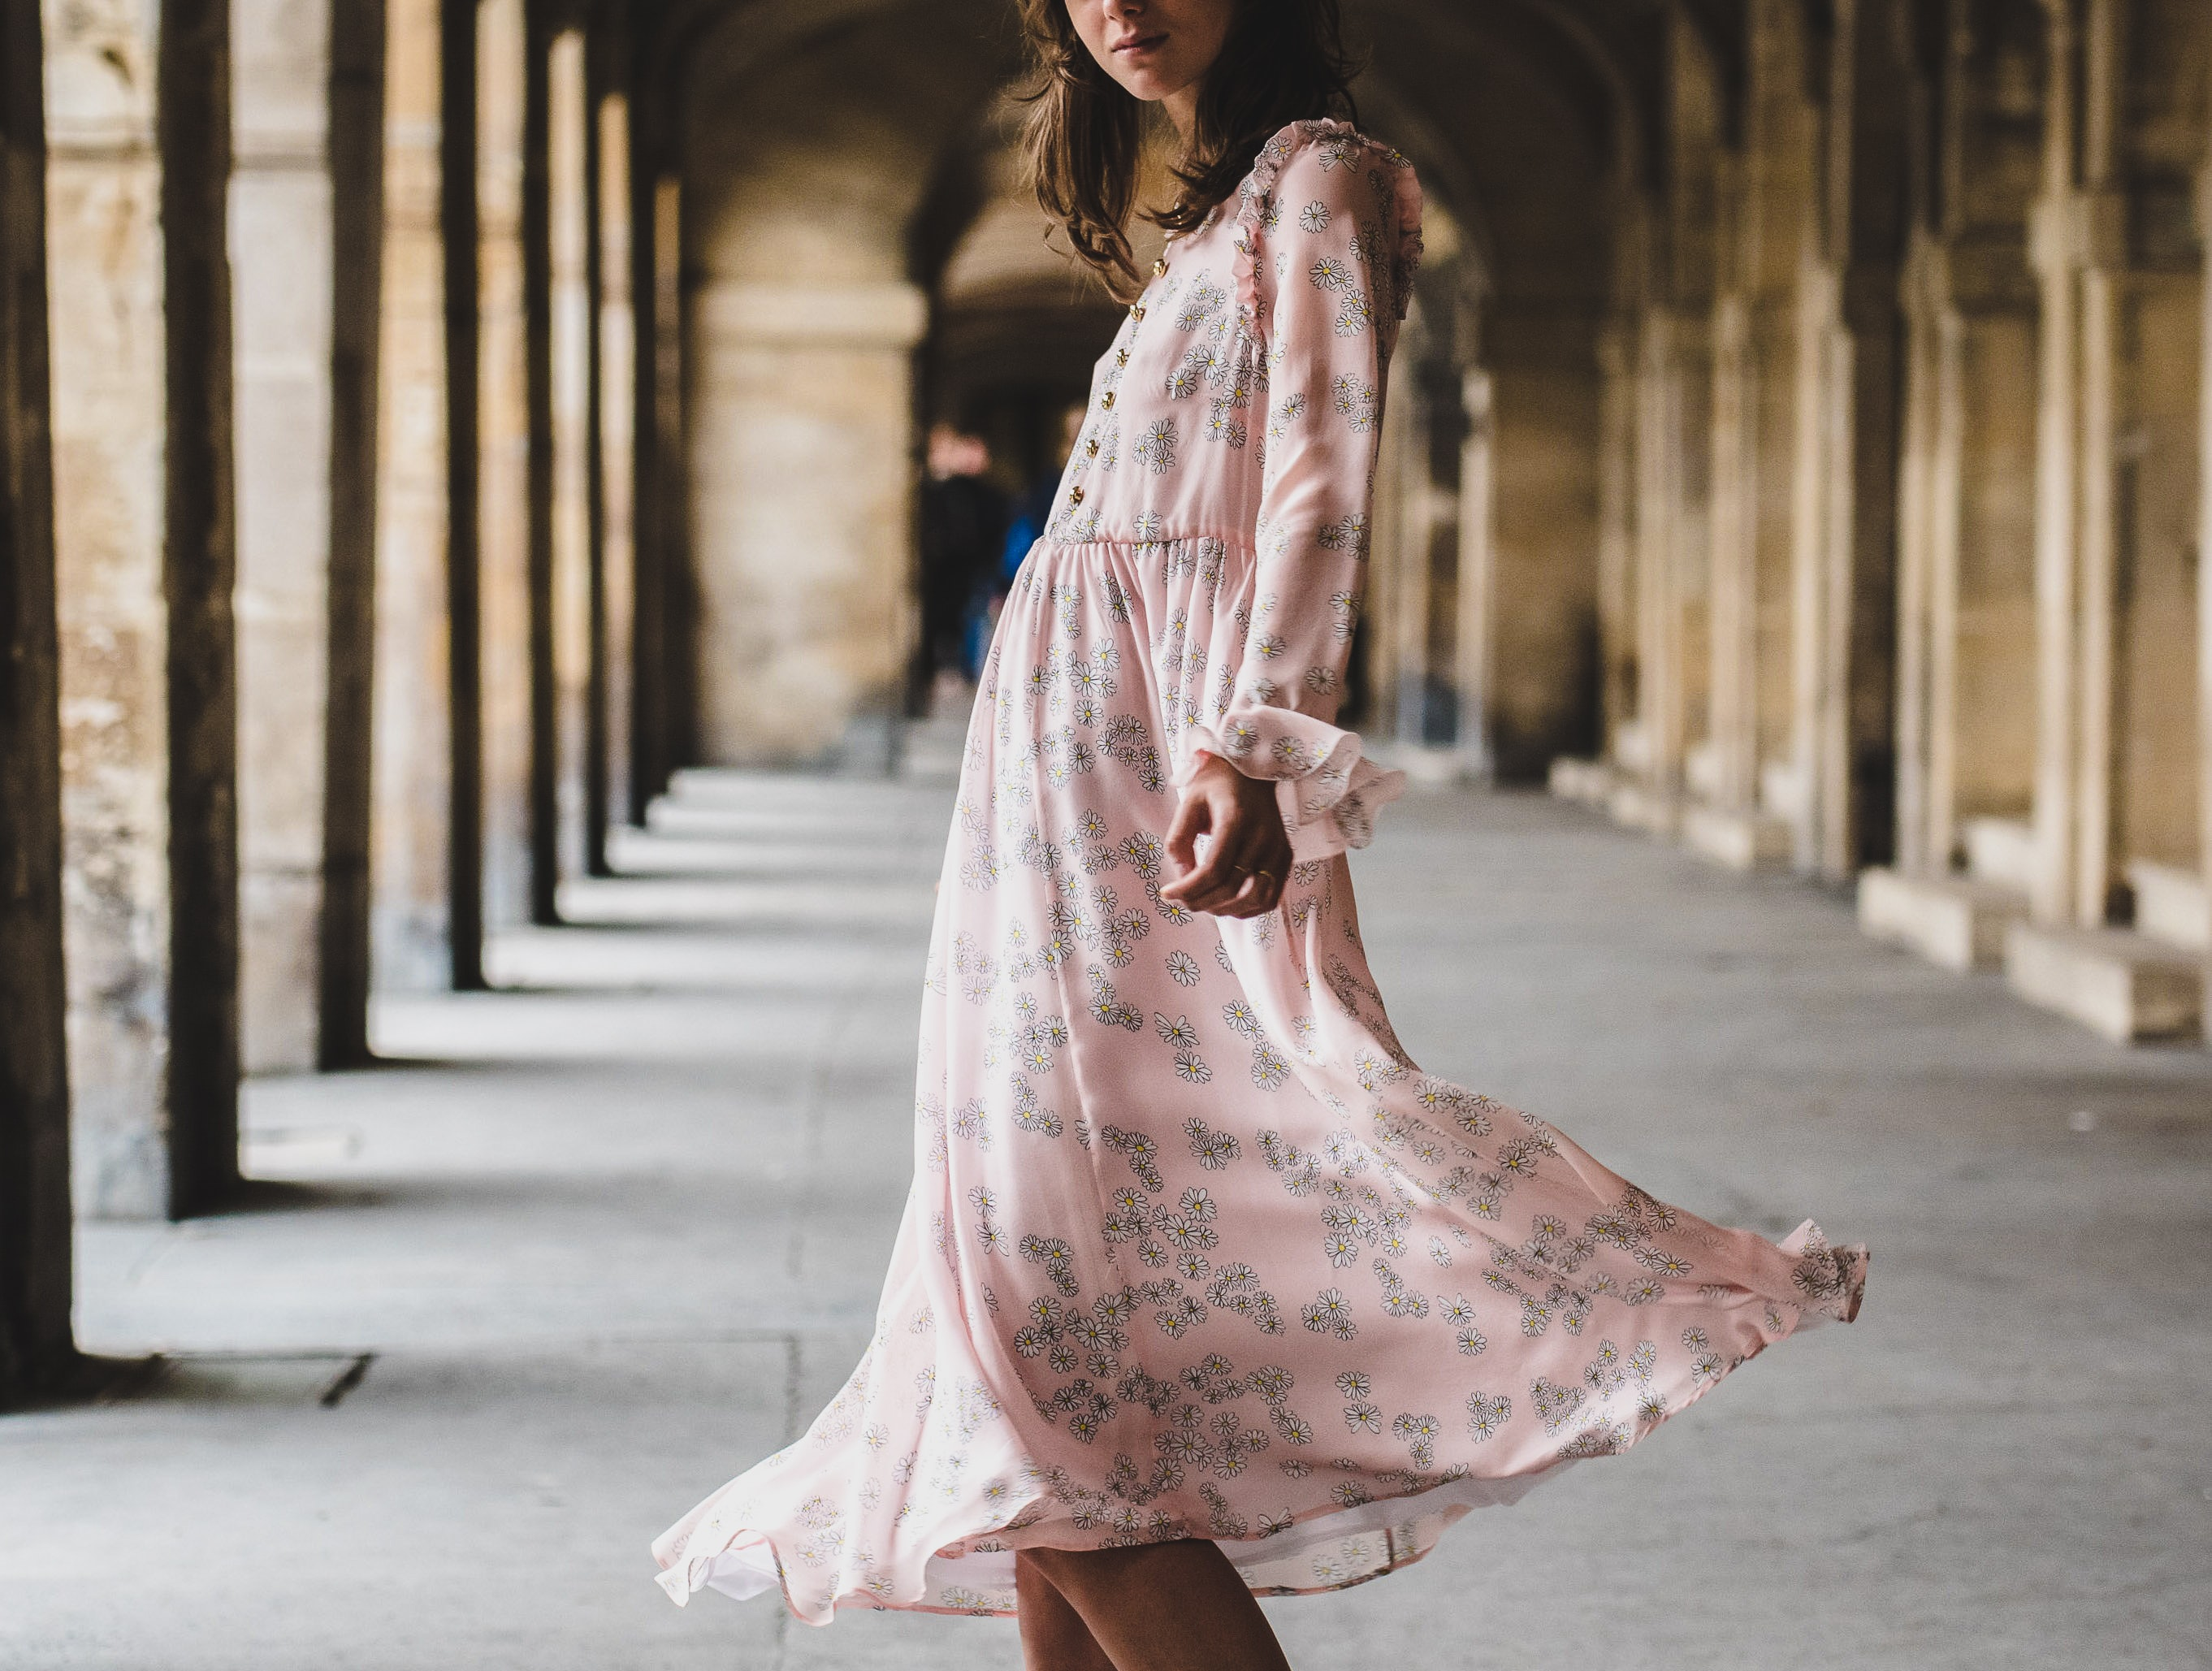 woman wearing pink long-sleeved dress standing inside building